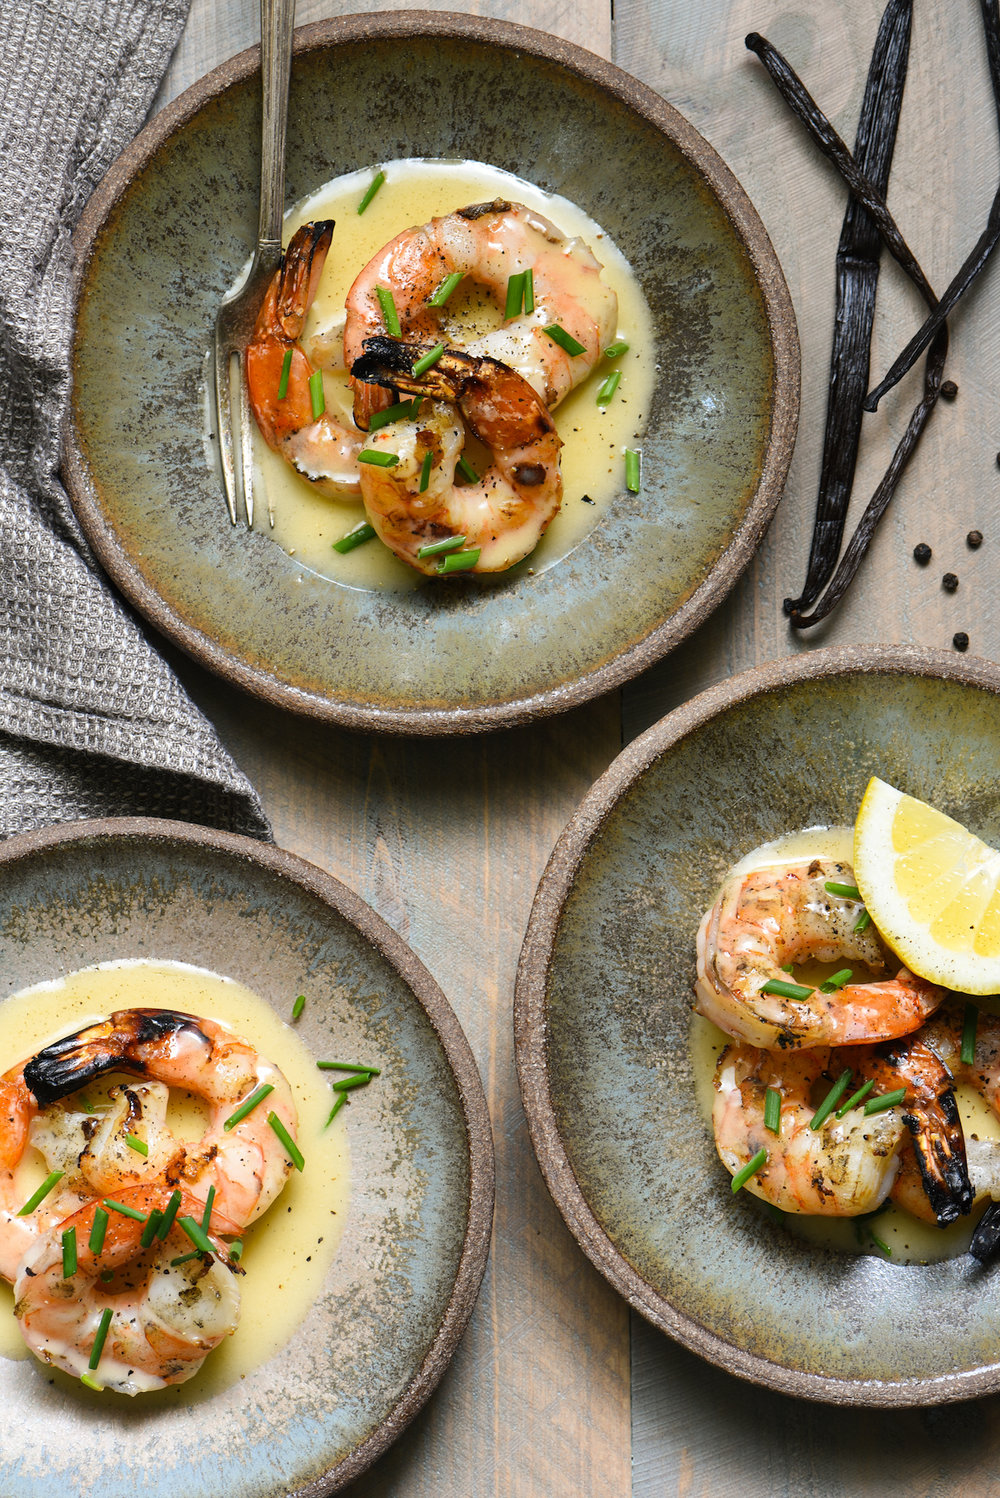 Dessert Bowls - Moonshadow - Lori Yates - Grilled-Shrimp-with-Vanilla-Beurre-Blanc.jpg